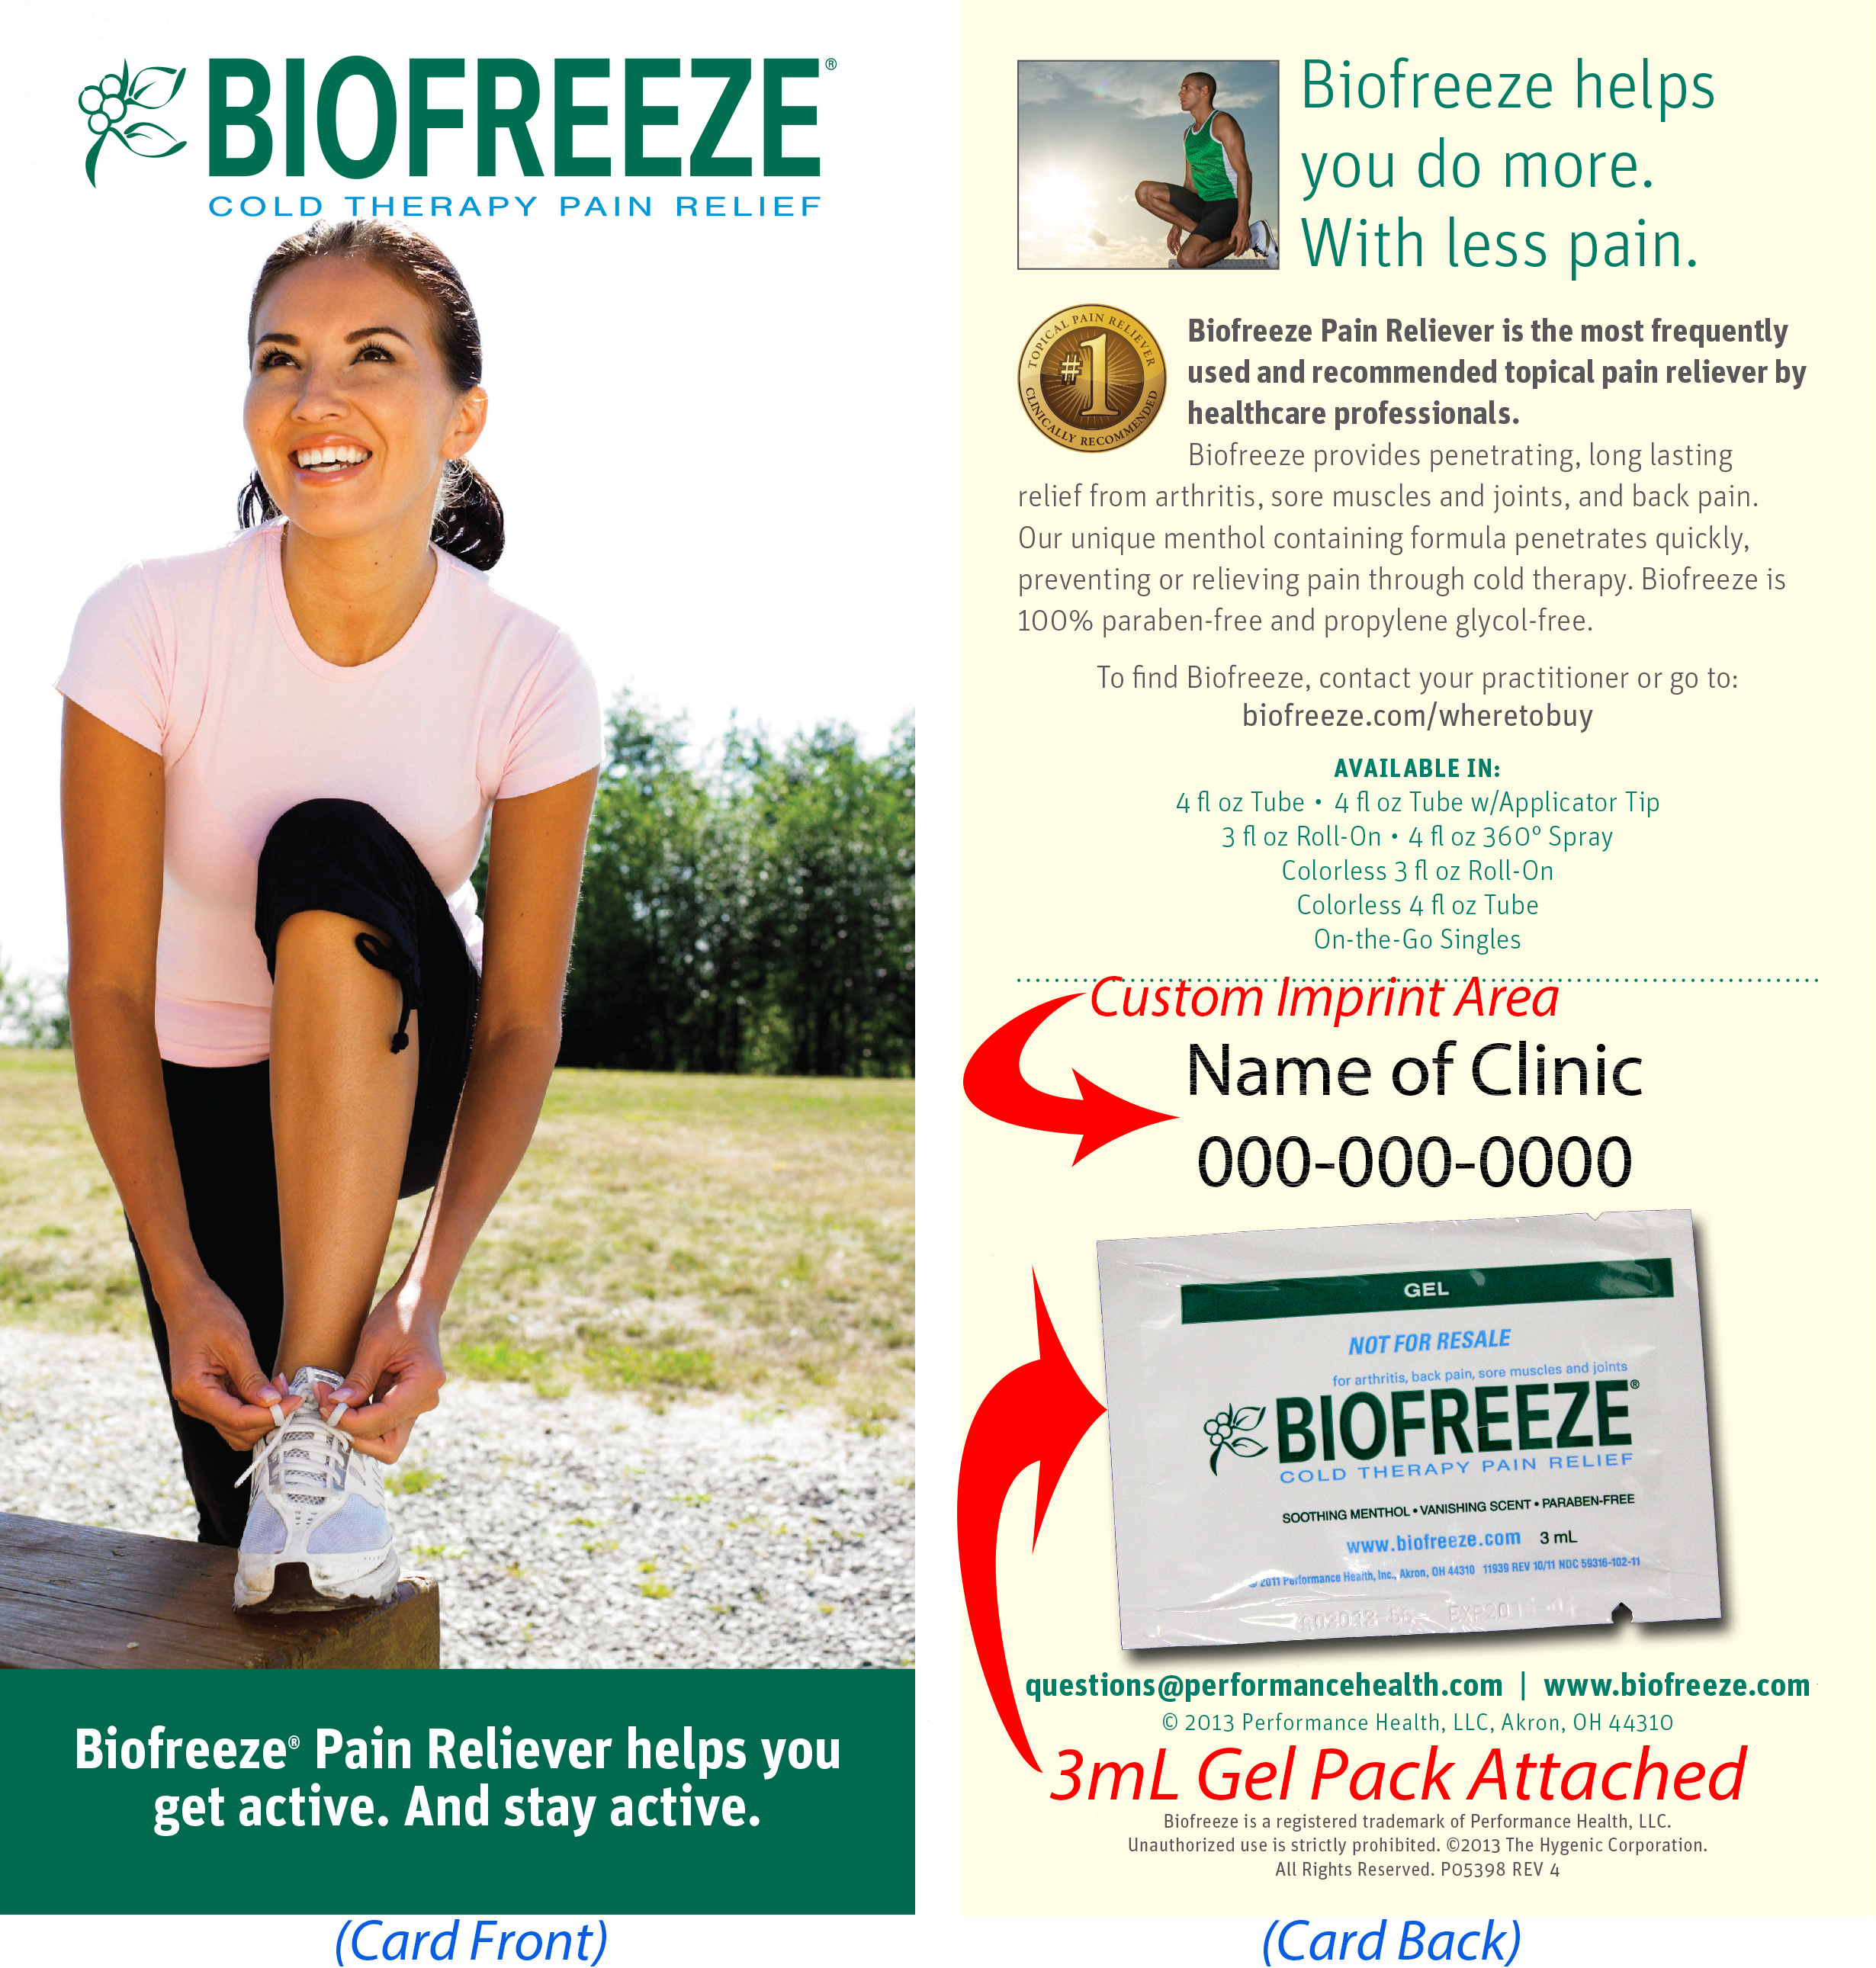 Free Consumer Biofreeze Sample Program Announced by Performance Health, MASSAGE Magazine